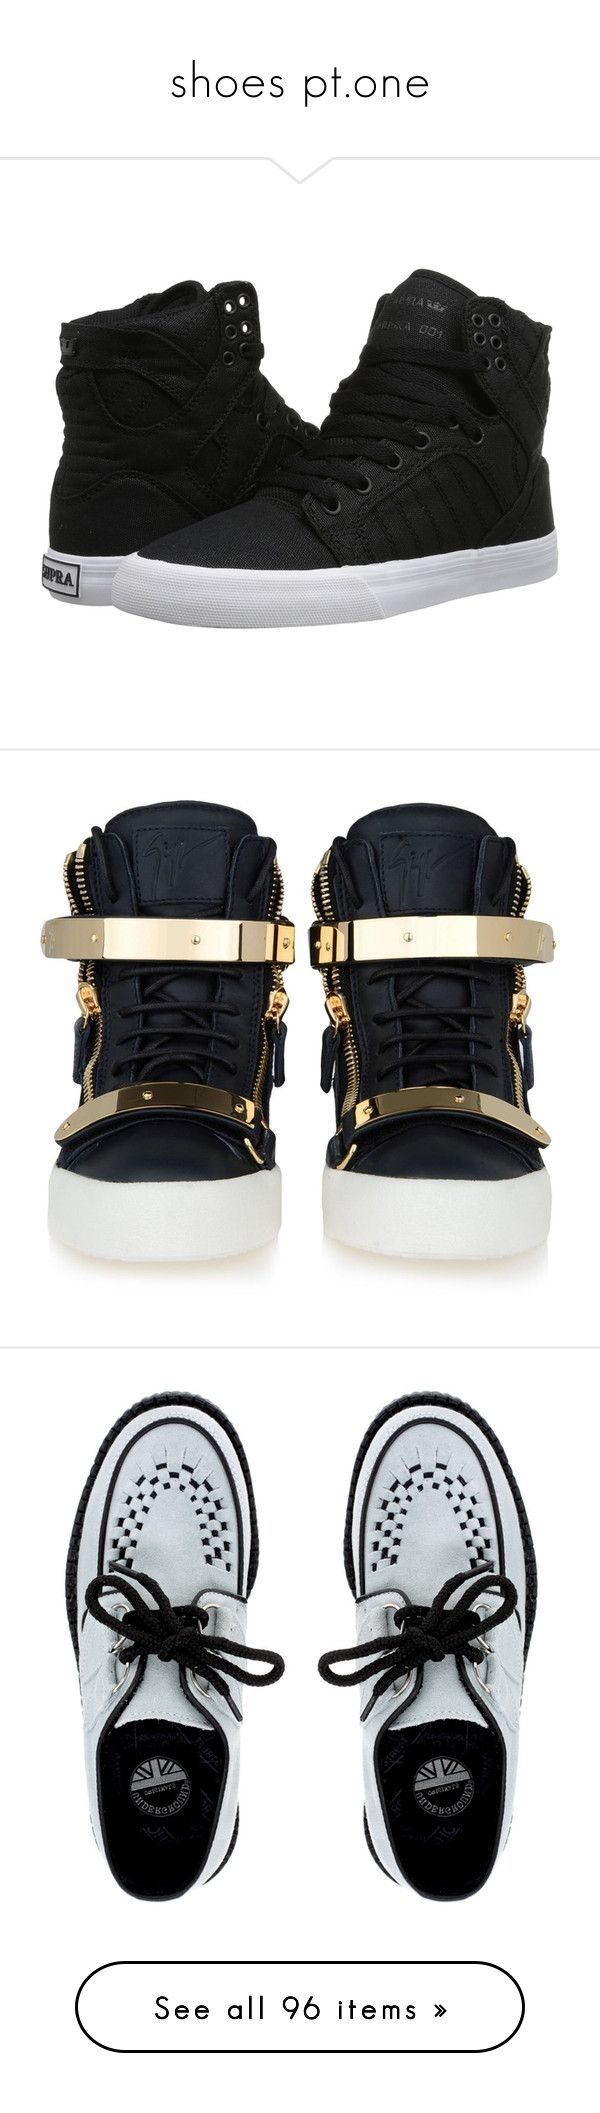 """""""shoes pt.one"""" by keikoochan ❤ liked on Polyvore featuring shoes, sneakers, toe cap shoes, genuine leather shoes, ankle support shoes, supra footwear, real leather shoes, giuseppe zanotti sneakers, giuseppe zanotti shoes and giuseppe zanotti trainers"""